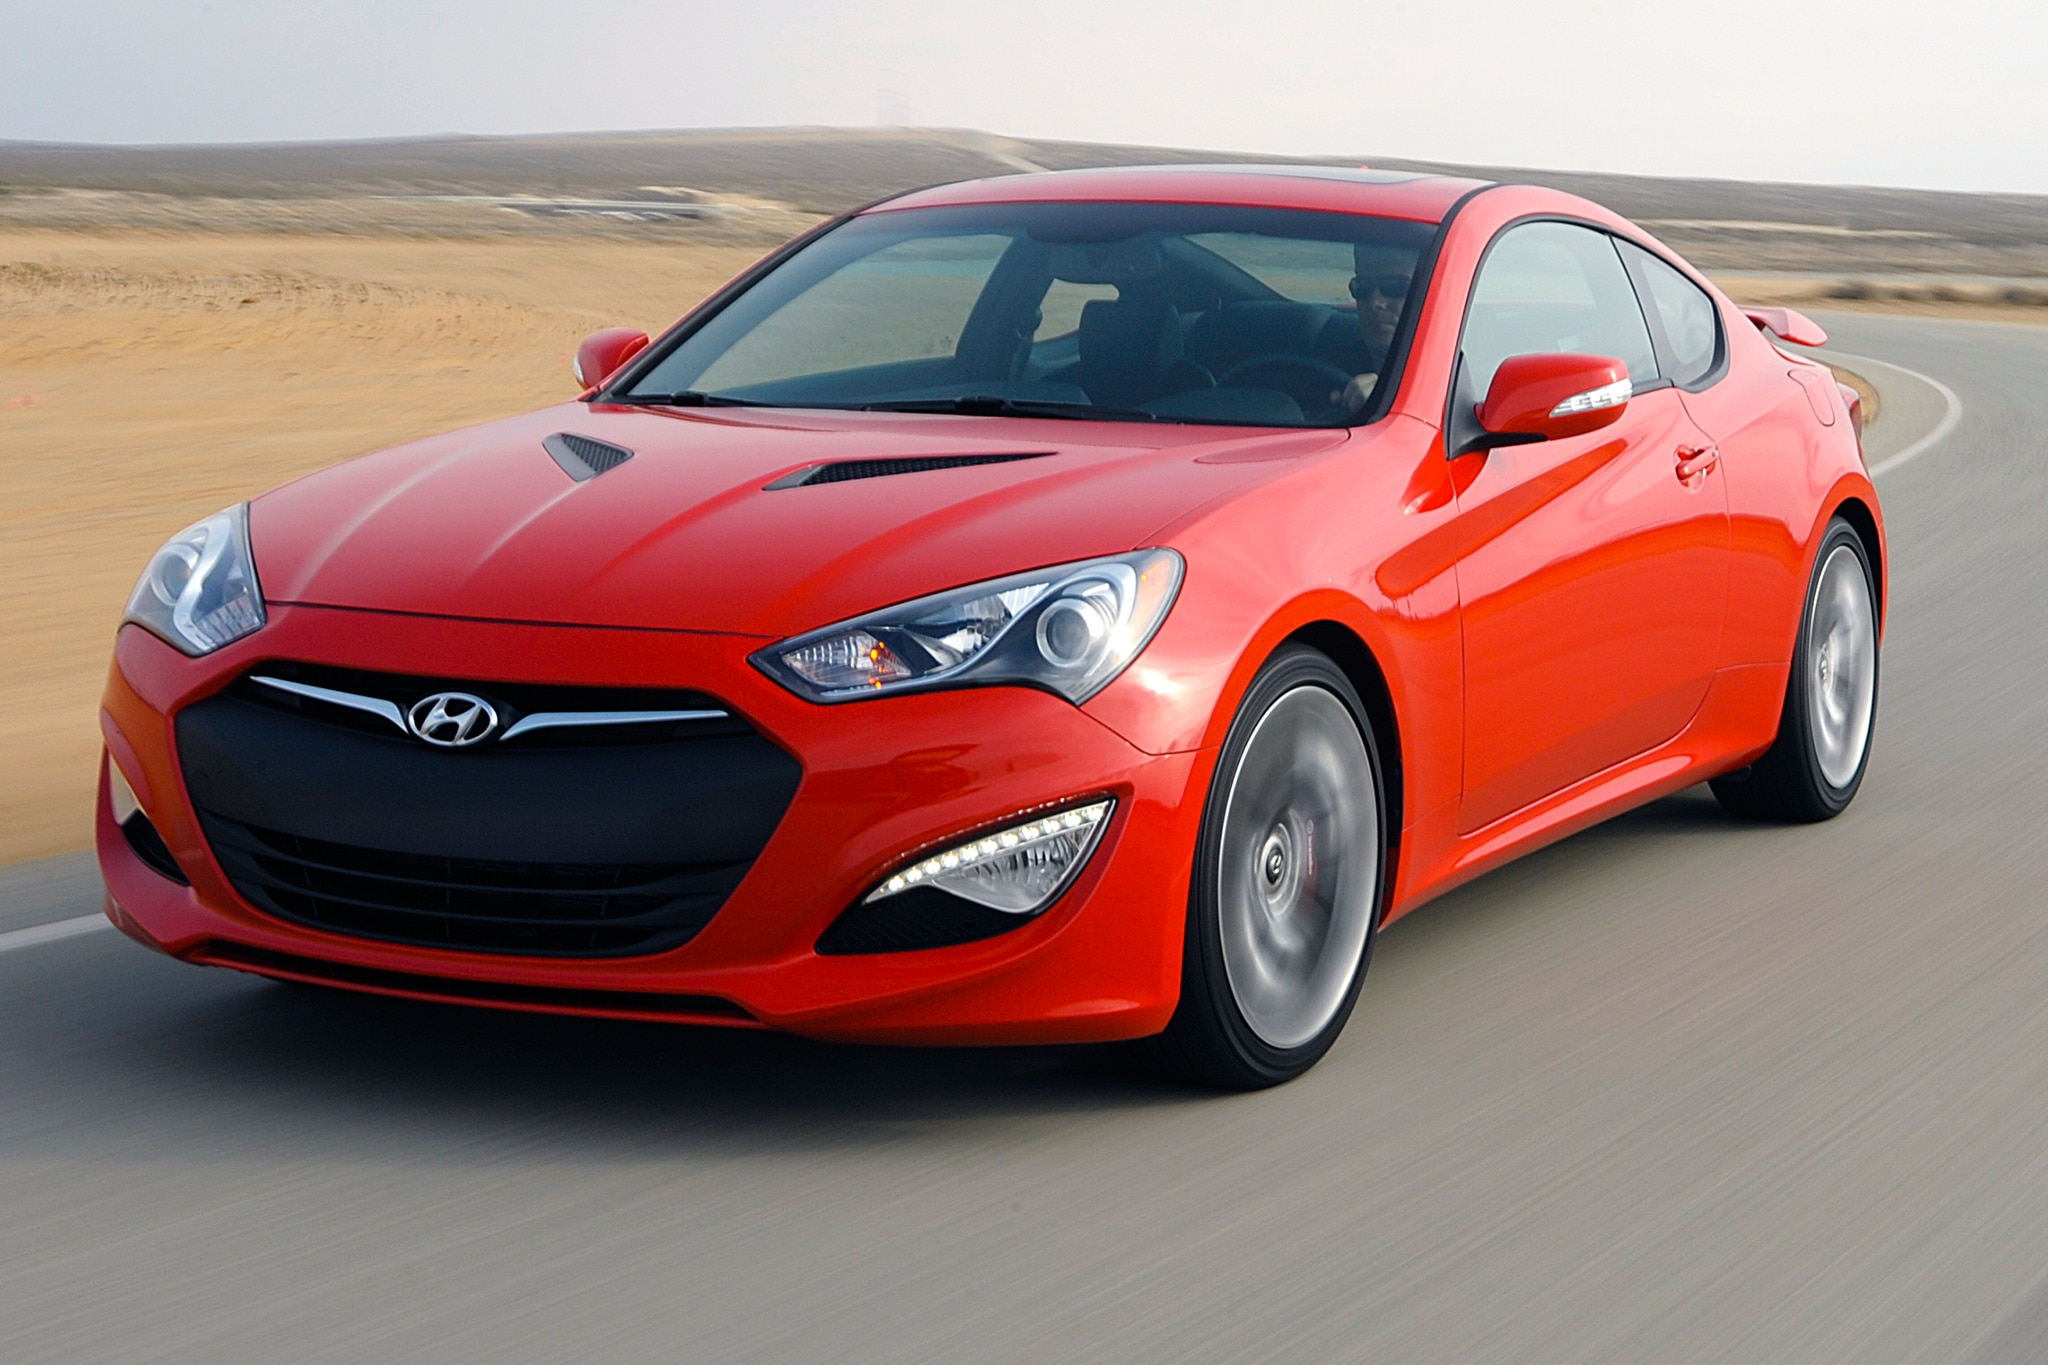 2013 Hyundai Genesis 2.0t >> 2014 Hyundai Genesis Coupe Priced at $27,245 - Automobile Magazine